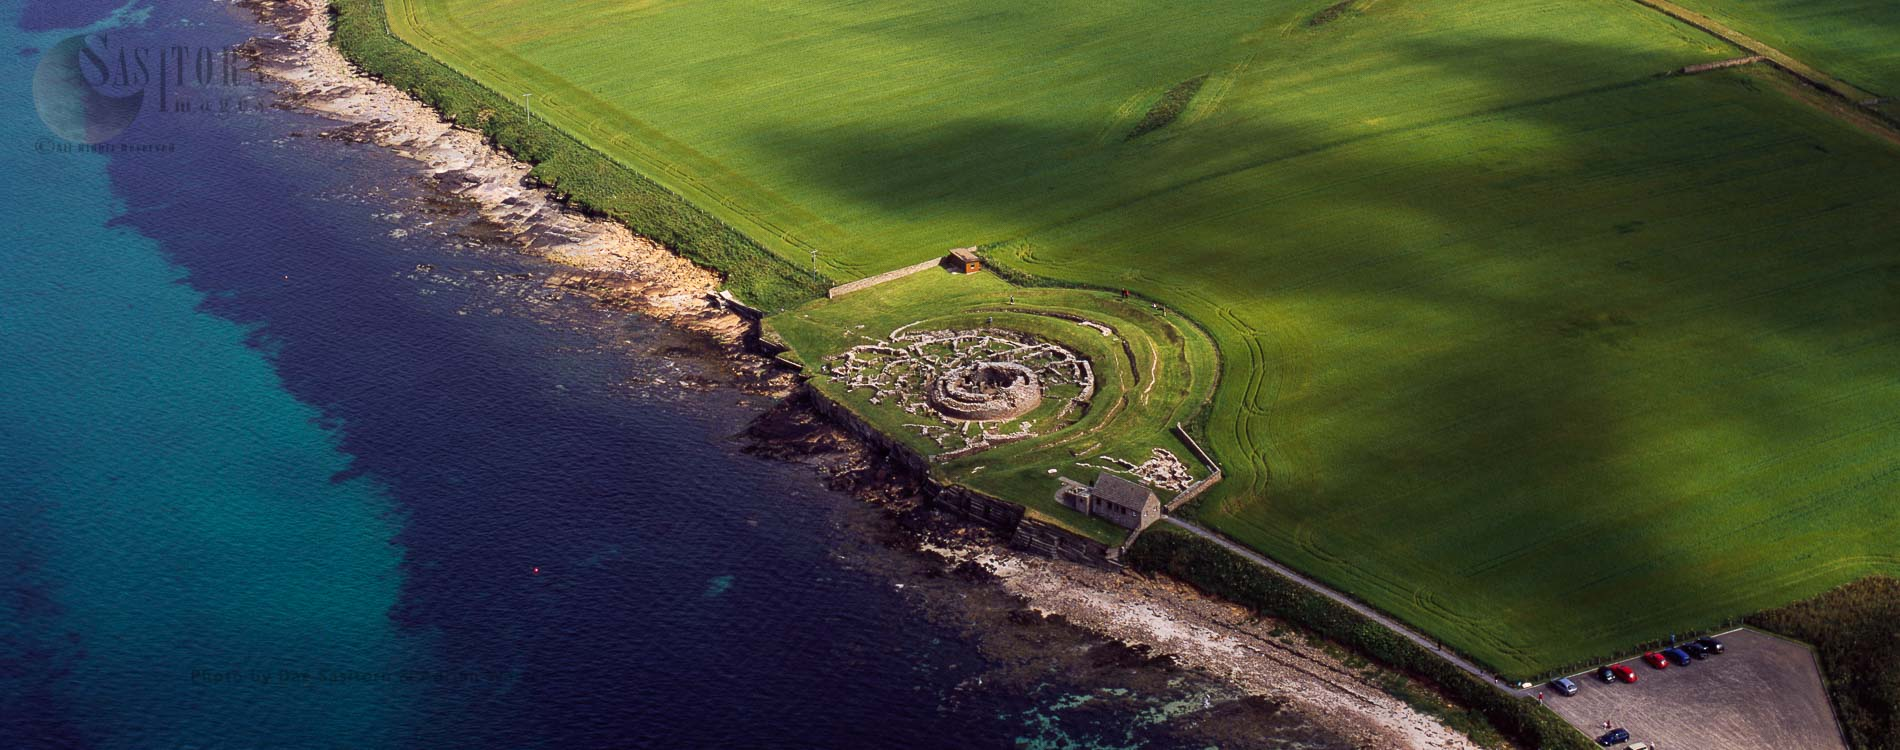 Broch of Gurness, an Iron Age 'broch village' on the northwest coast of Mainland Orkney, Scotland